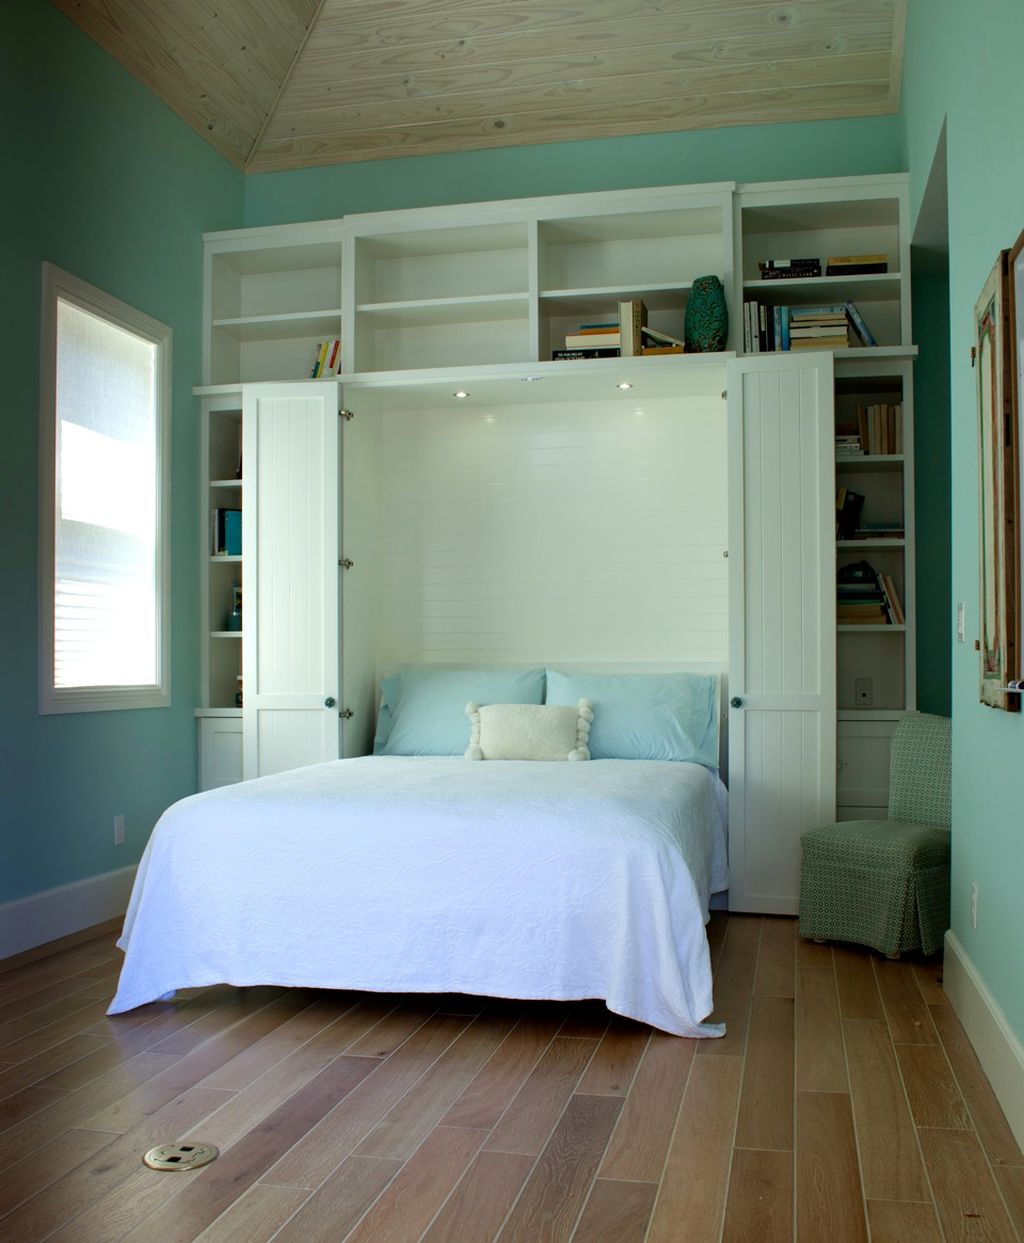 20 Space-Saving Murphy Bed Design Ideas for Small Rooms on Ideas For Small Rooms  id=88886